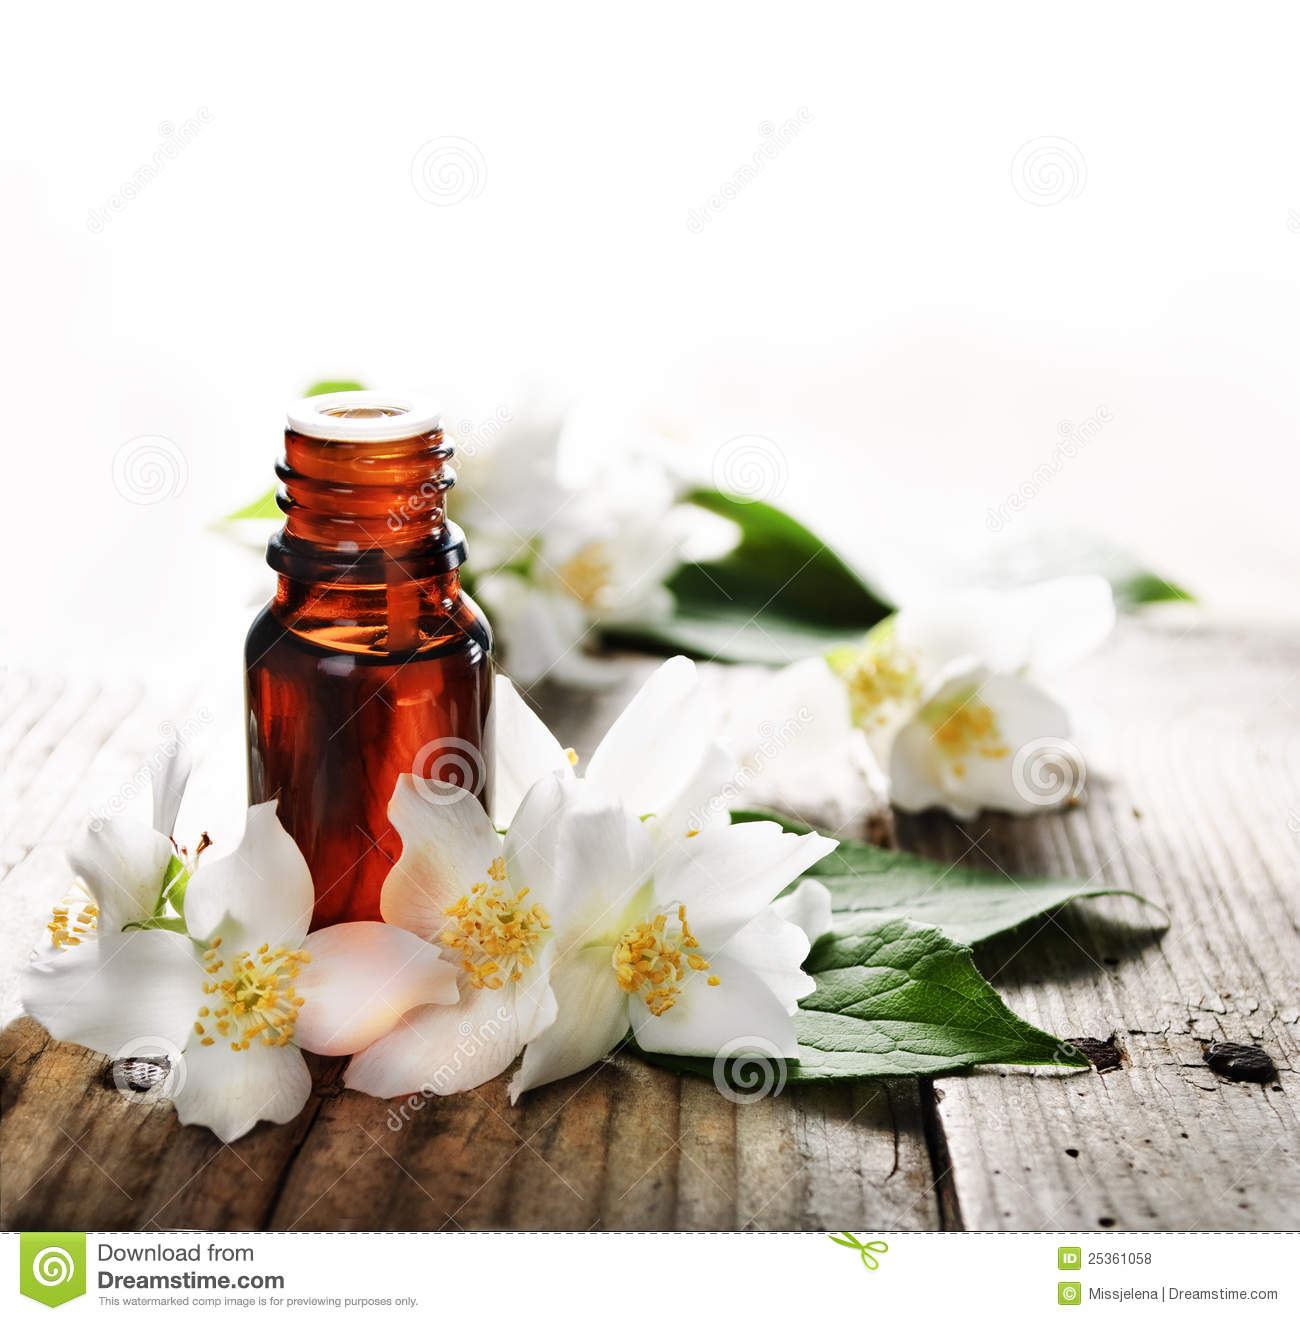 It is a picture of Handy Free Essential Oil